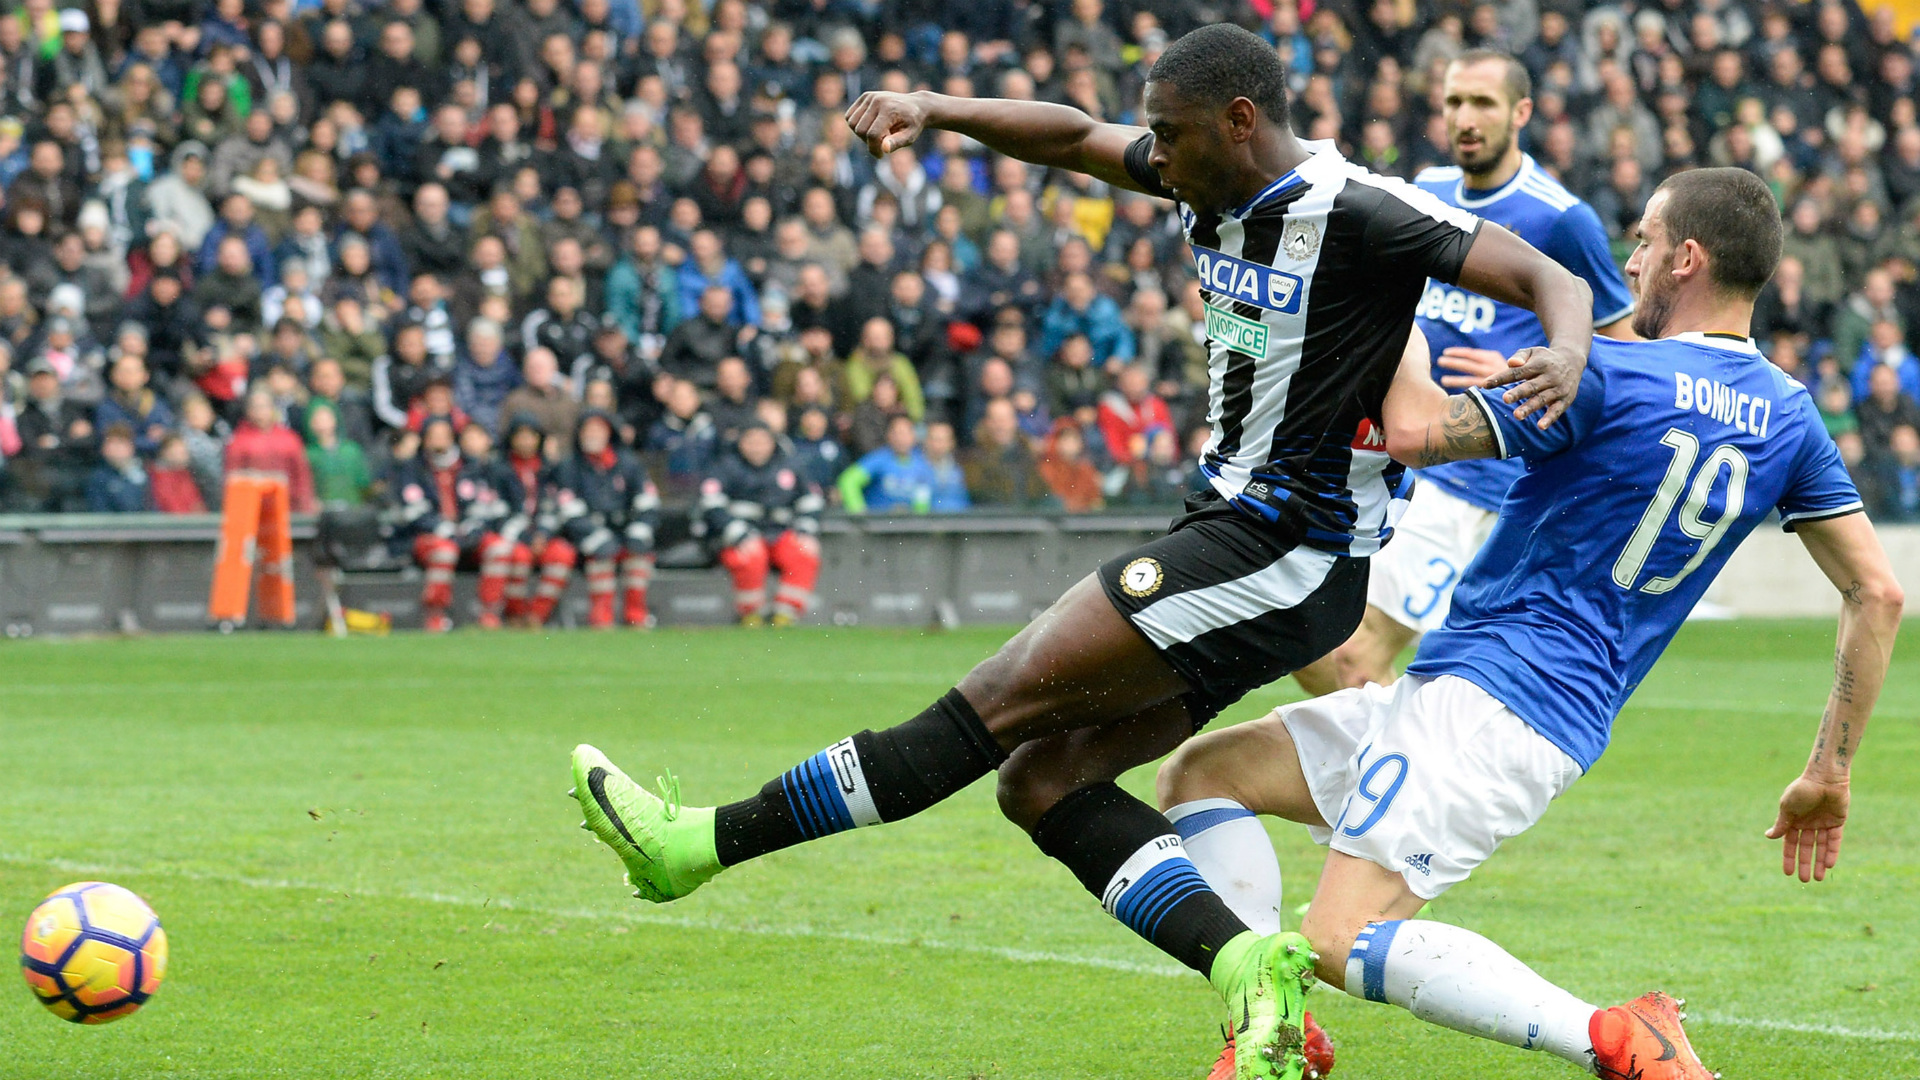 Udinese V Juventus Match Report 05 03 2017 Serie A